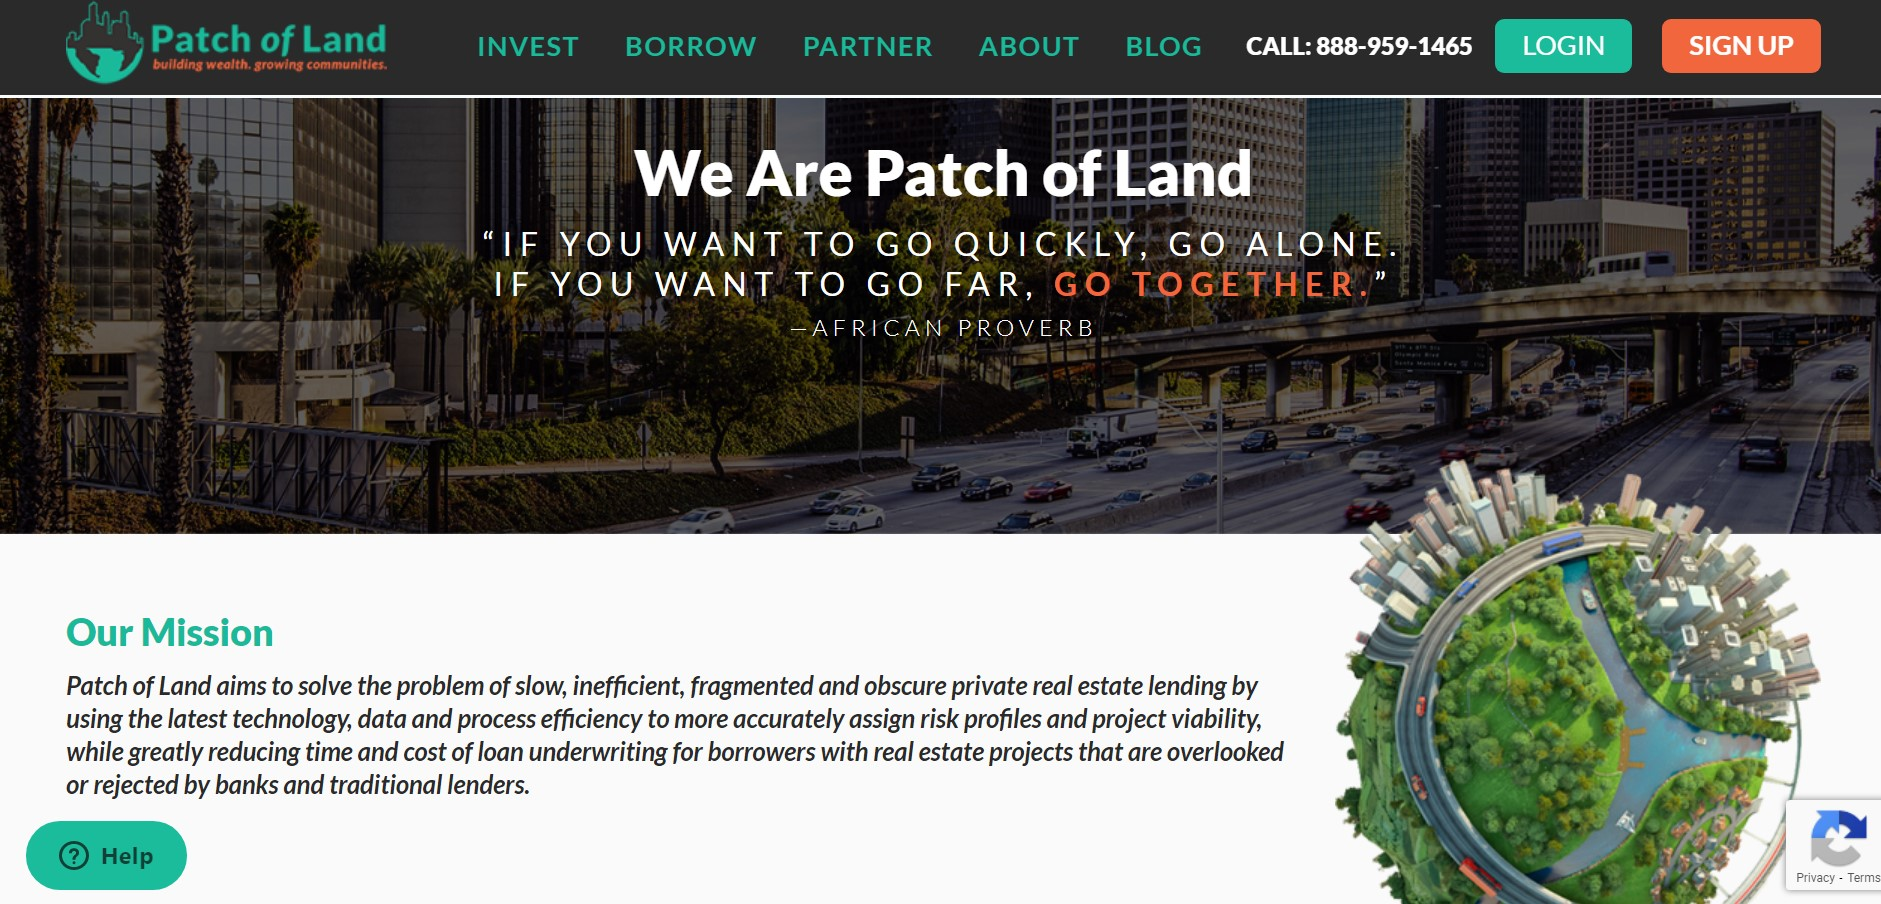 Patch of Land is one of our favorite crowdfunding websites.